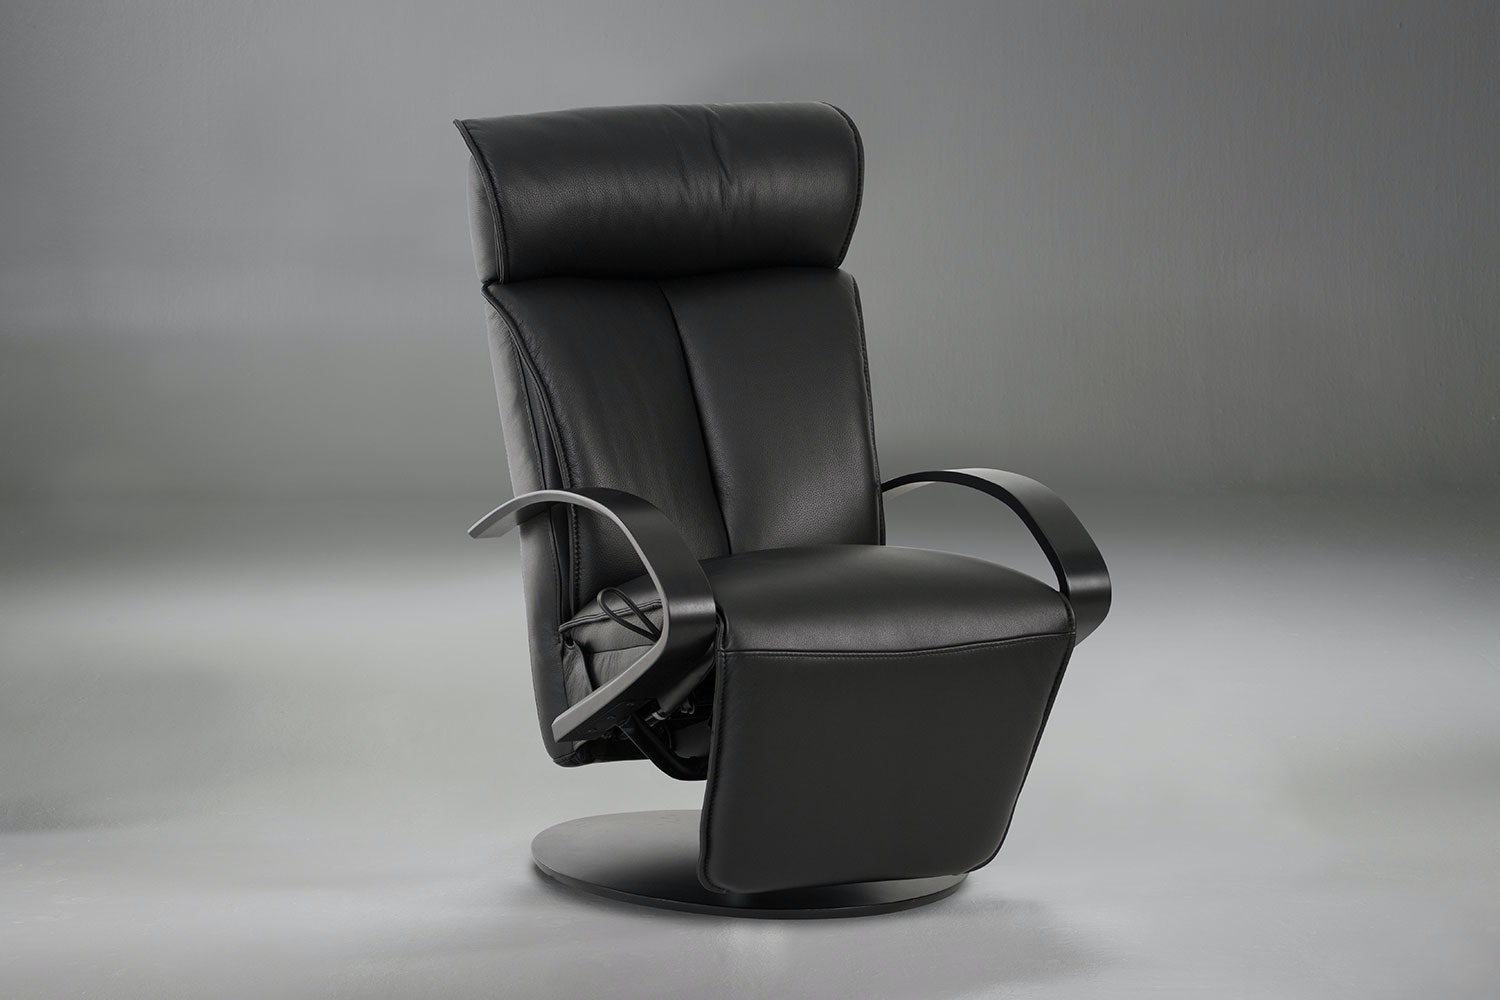 Codi Leather Recliner Chair and Footstool - Elite  IMG